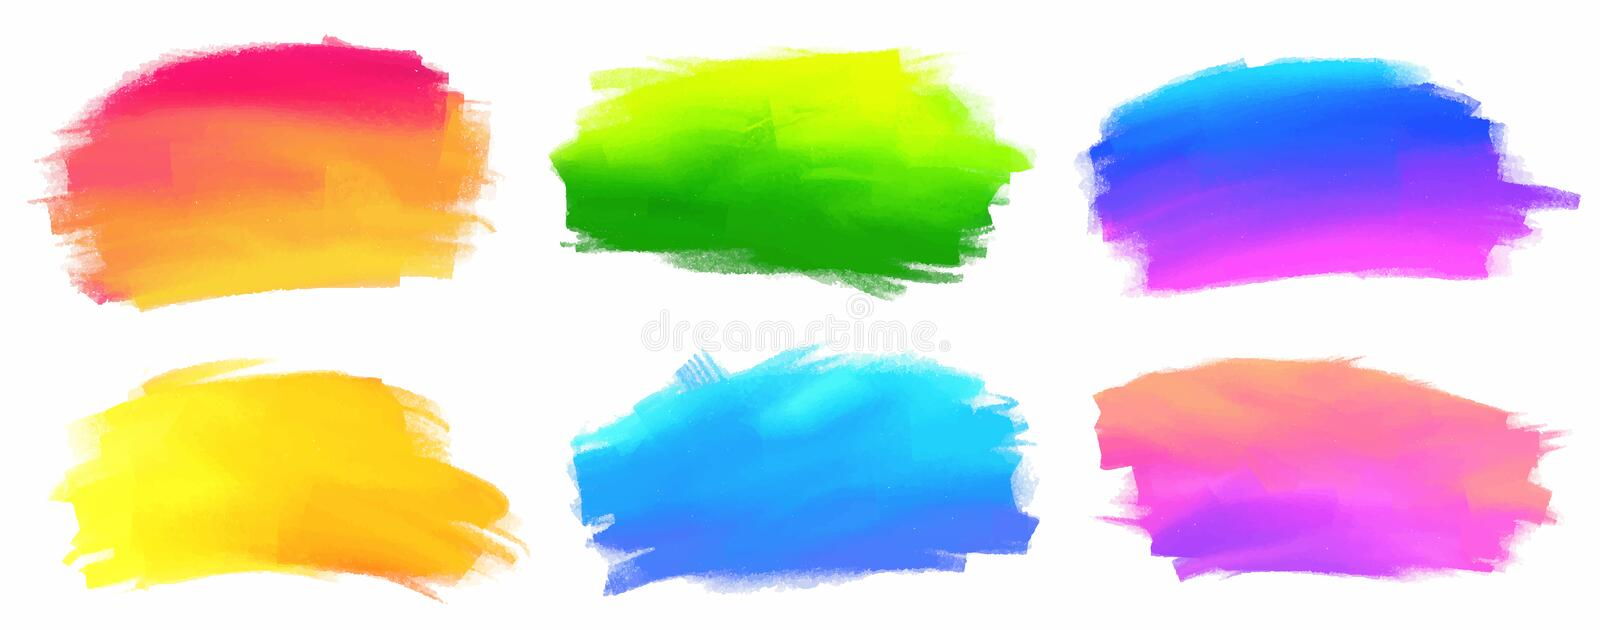 Vibrant spectrum colors vector acrylic paint stains royalty free illustration